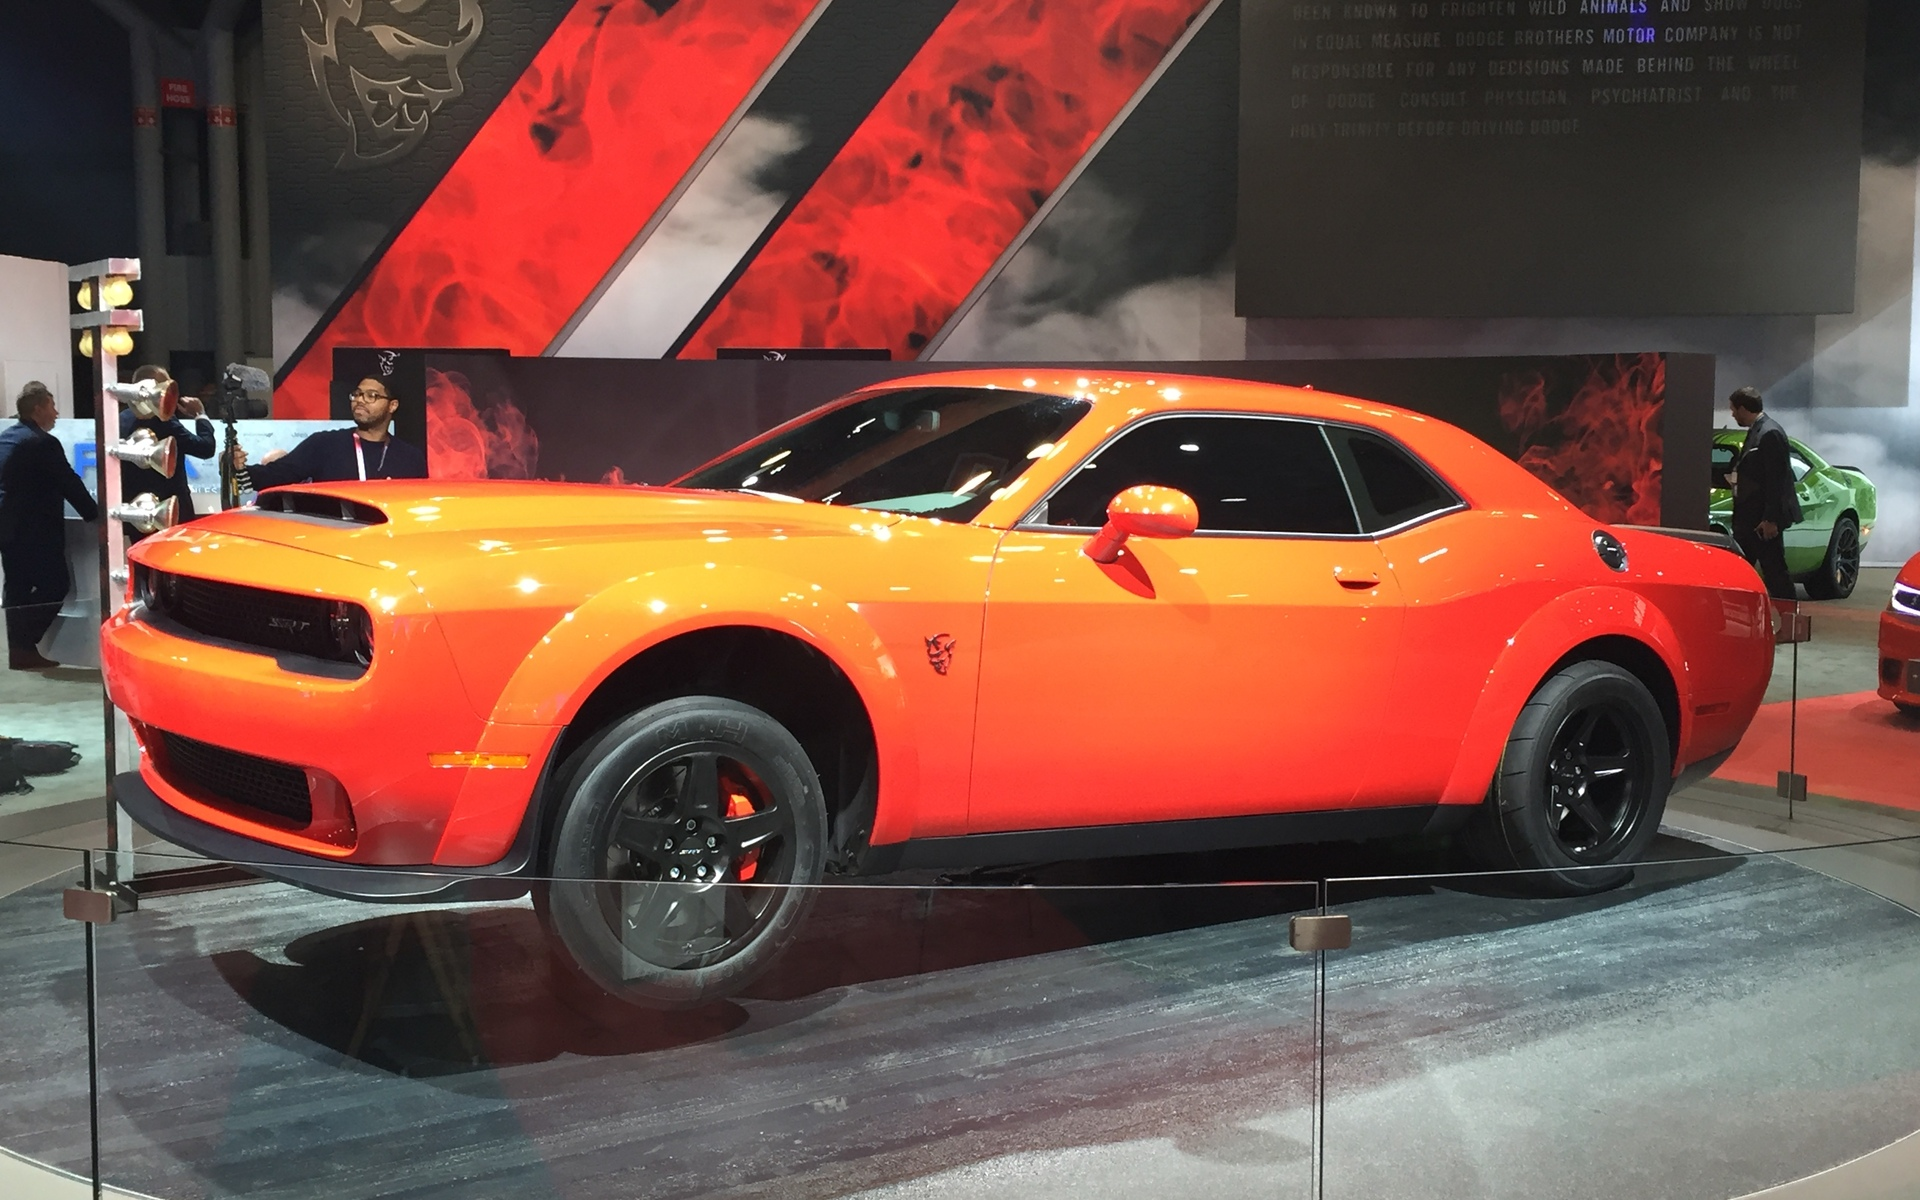 2018 dodge challenger srt demon monster drag racer the car guide. Black Bedroom Furniture Sets. Home Design Ideas